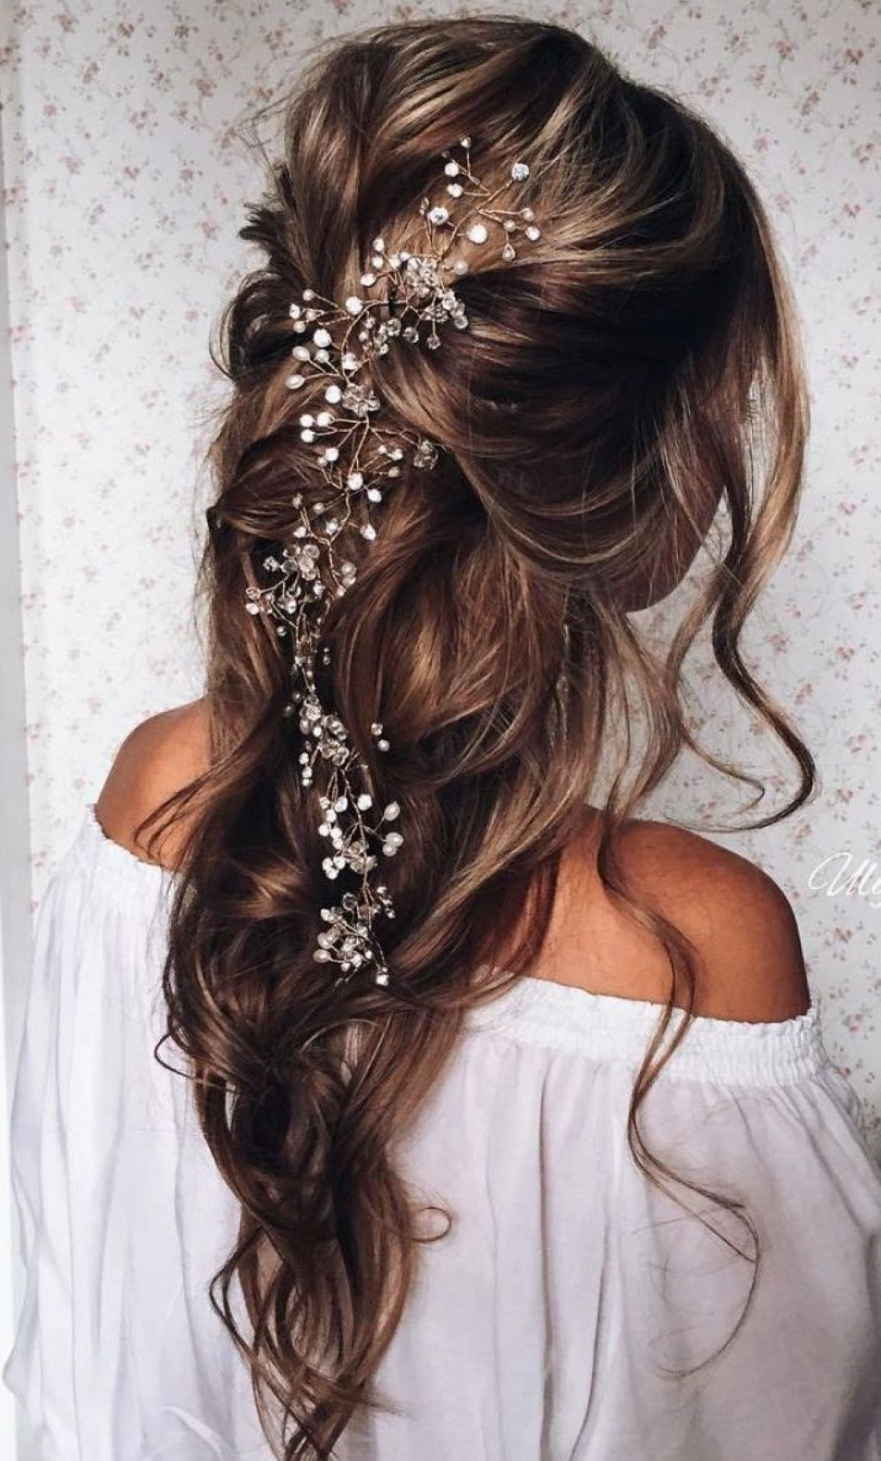 Most Current Half Up Wedding Hairstyles For Long Hair In √ 24+ Best Wedding Hairstyles For Long Hair Half Up: Wedding (View 10 of 15)